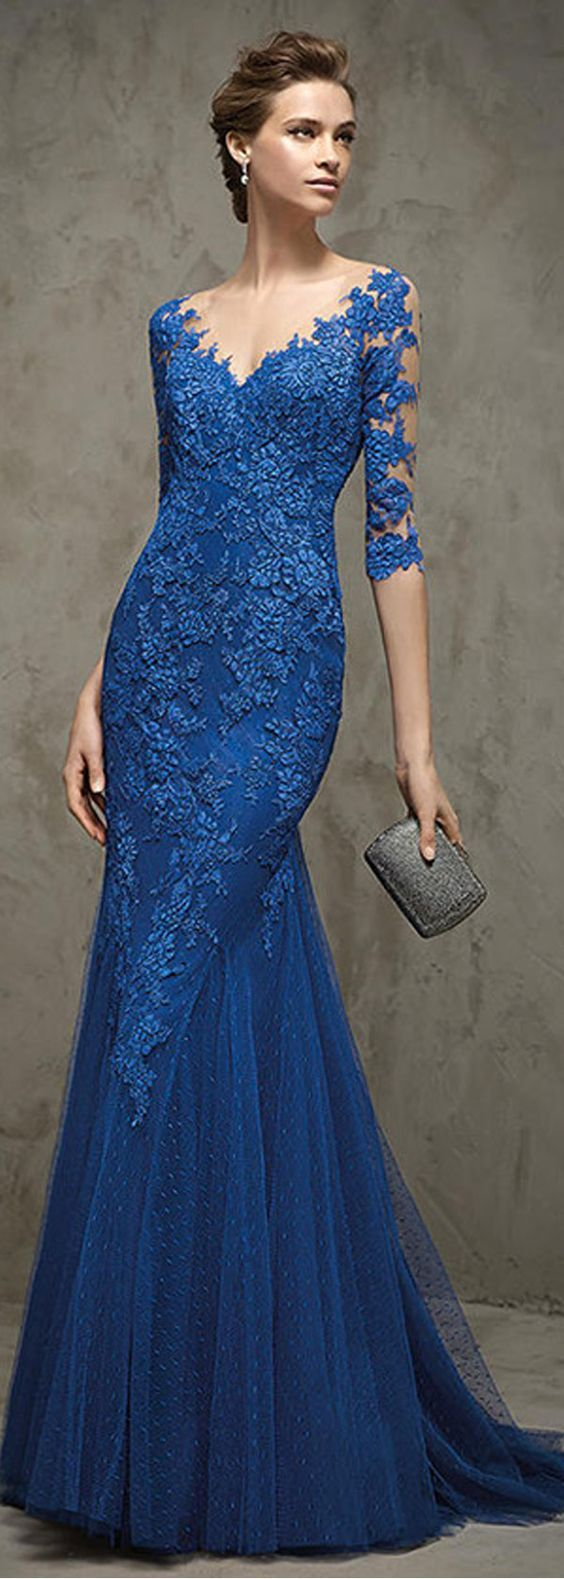 Long Blue 3/4 Length Sleeves Lace Tulle Illusion Neckline Prom Evening Dresses 2103028